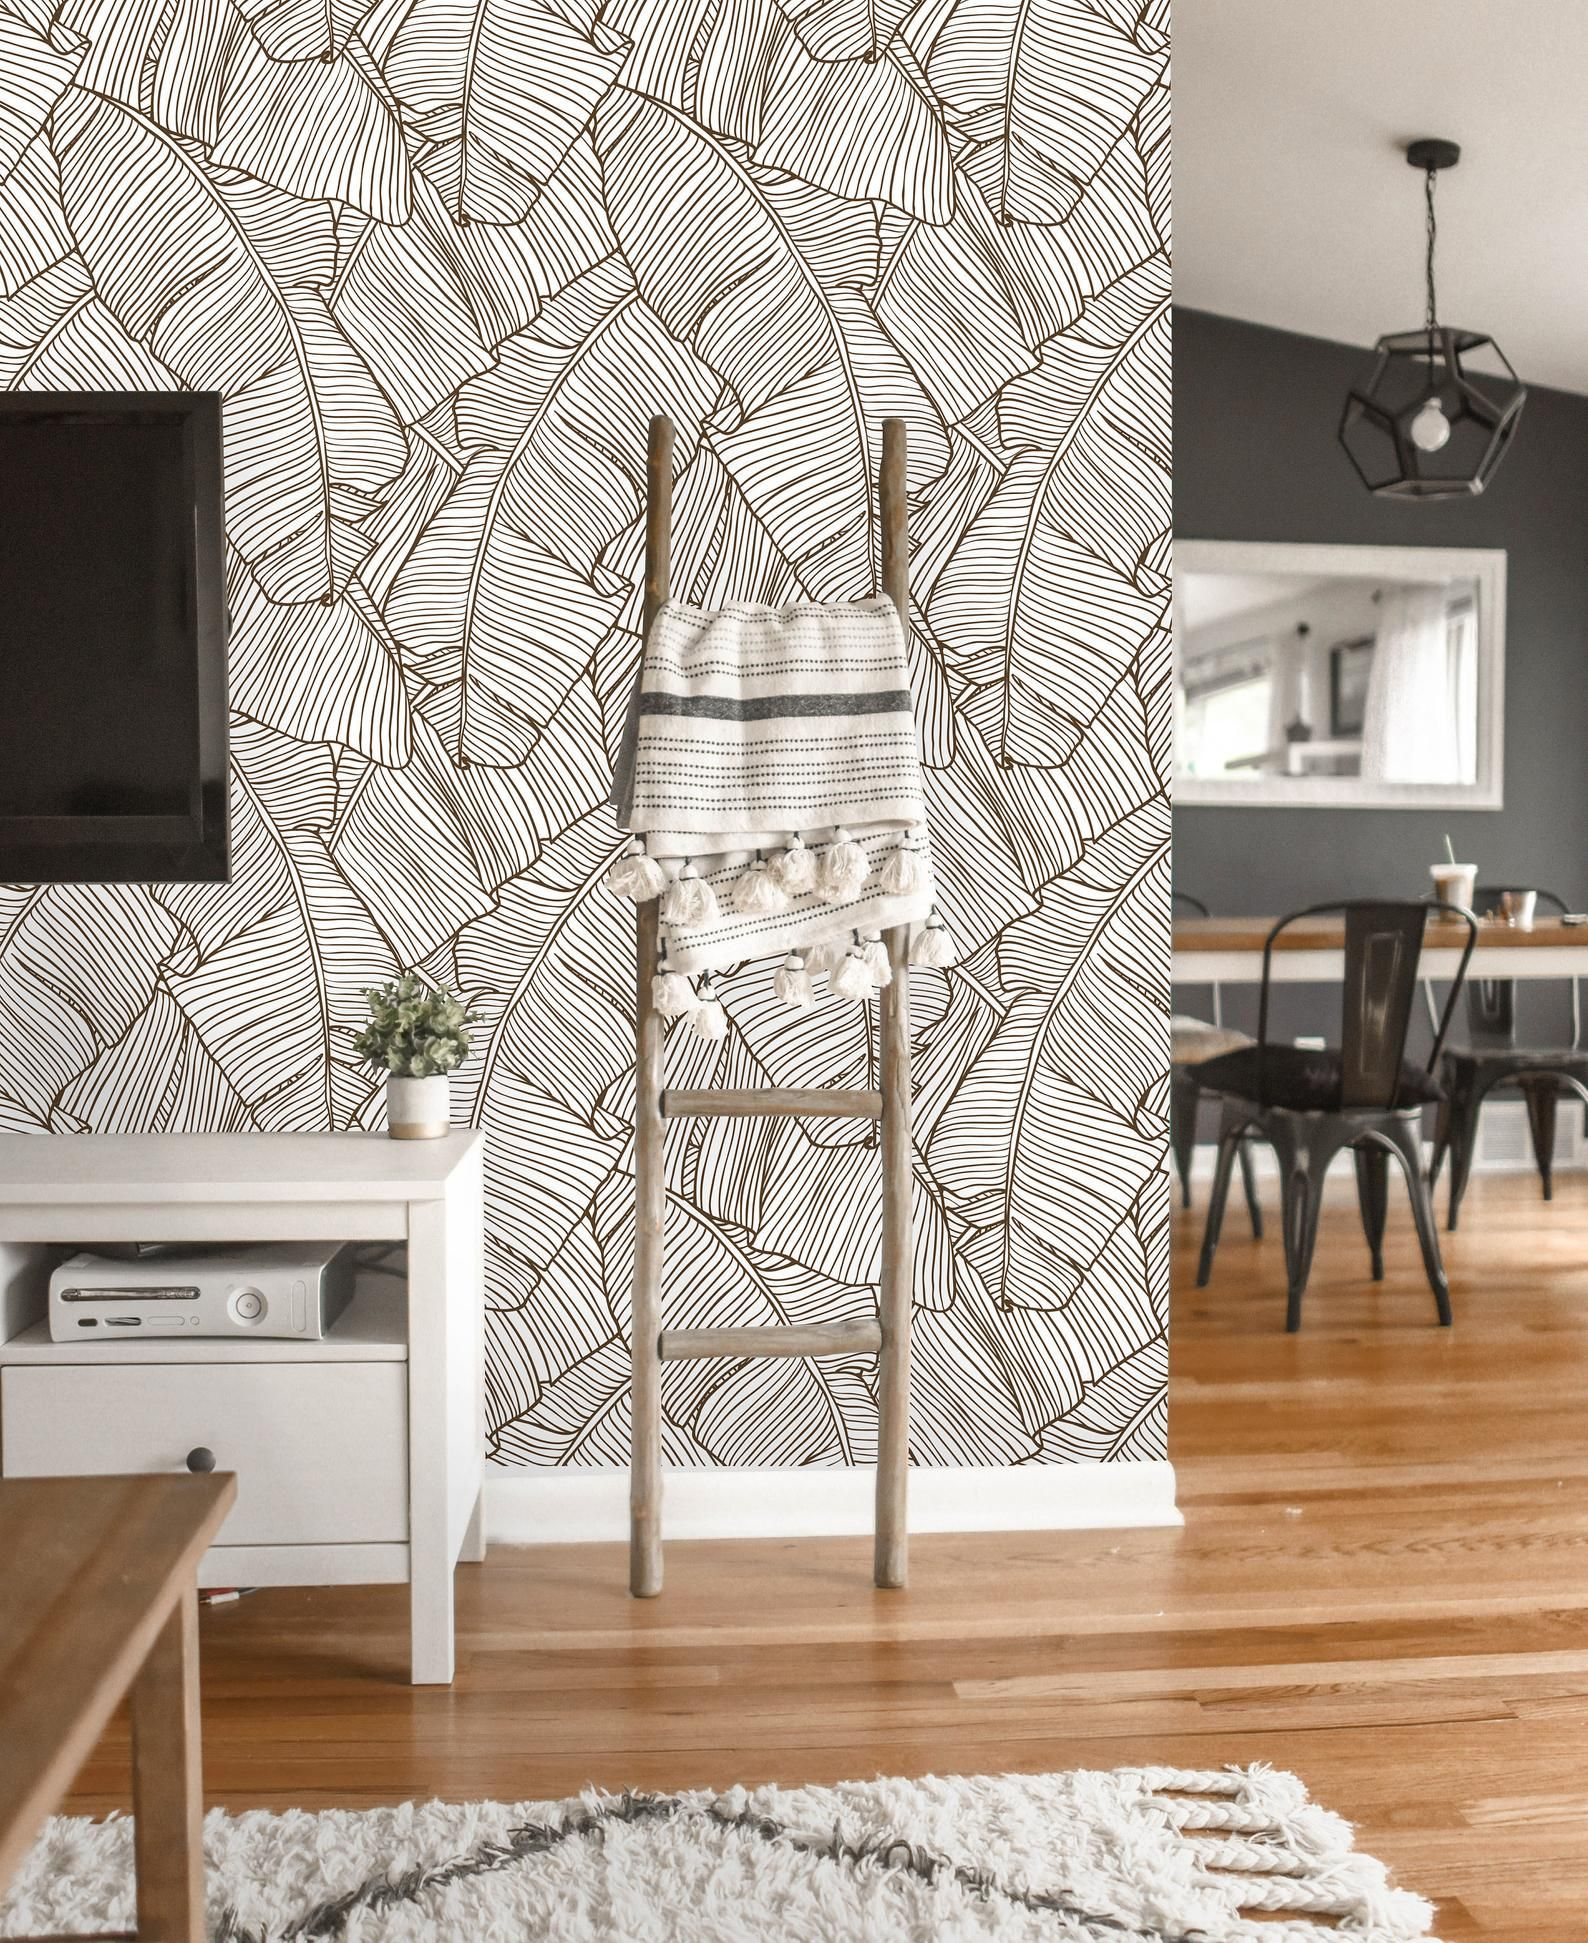 Removable Wallpaper Peel And Stick Tropical Wallpaper Self Etsy In 2021 Palm Wallpaper Tropical Wallpaper Removable Wallpaper